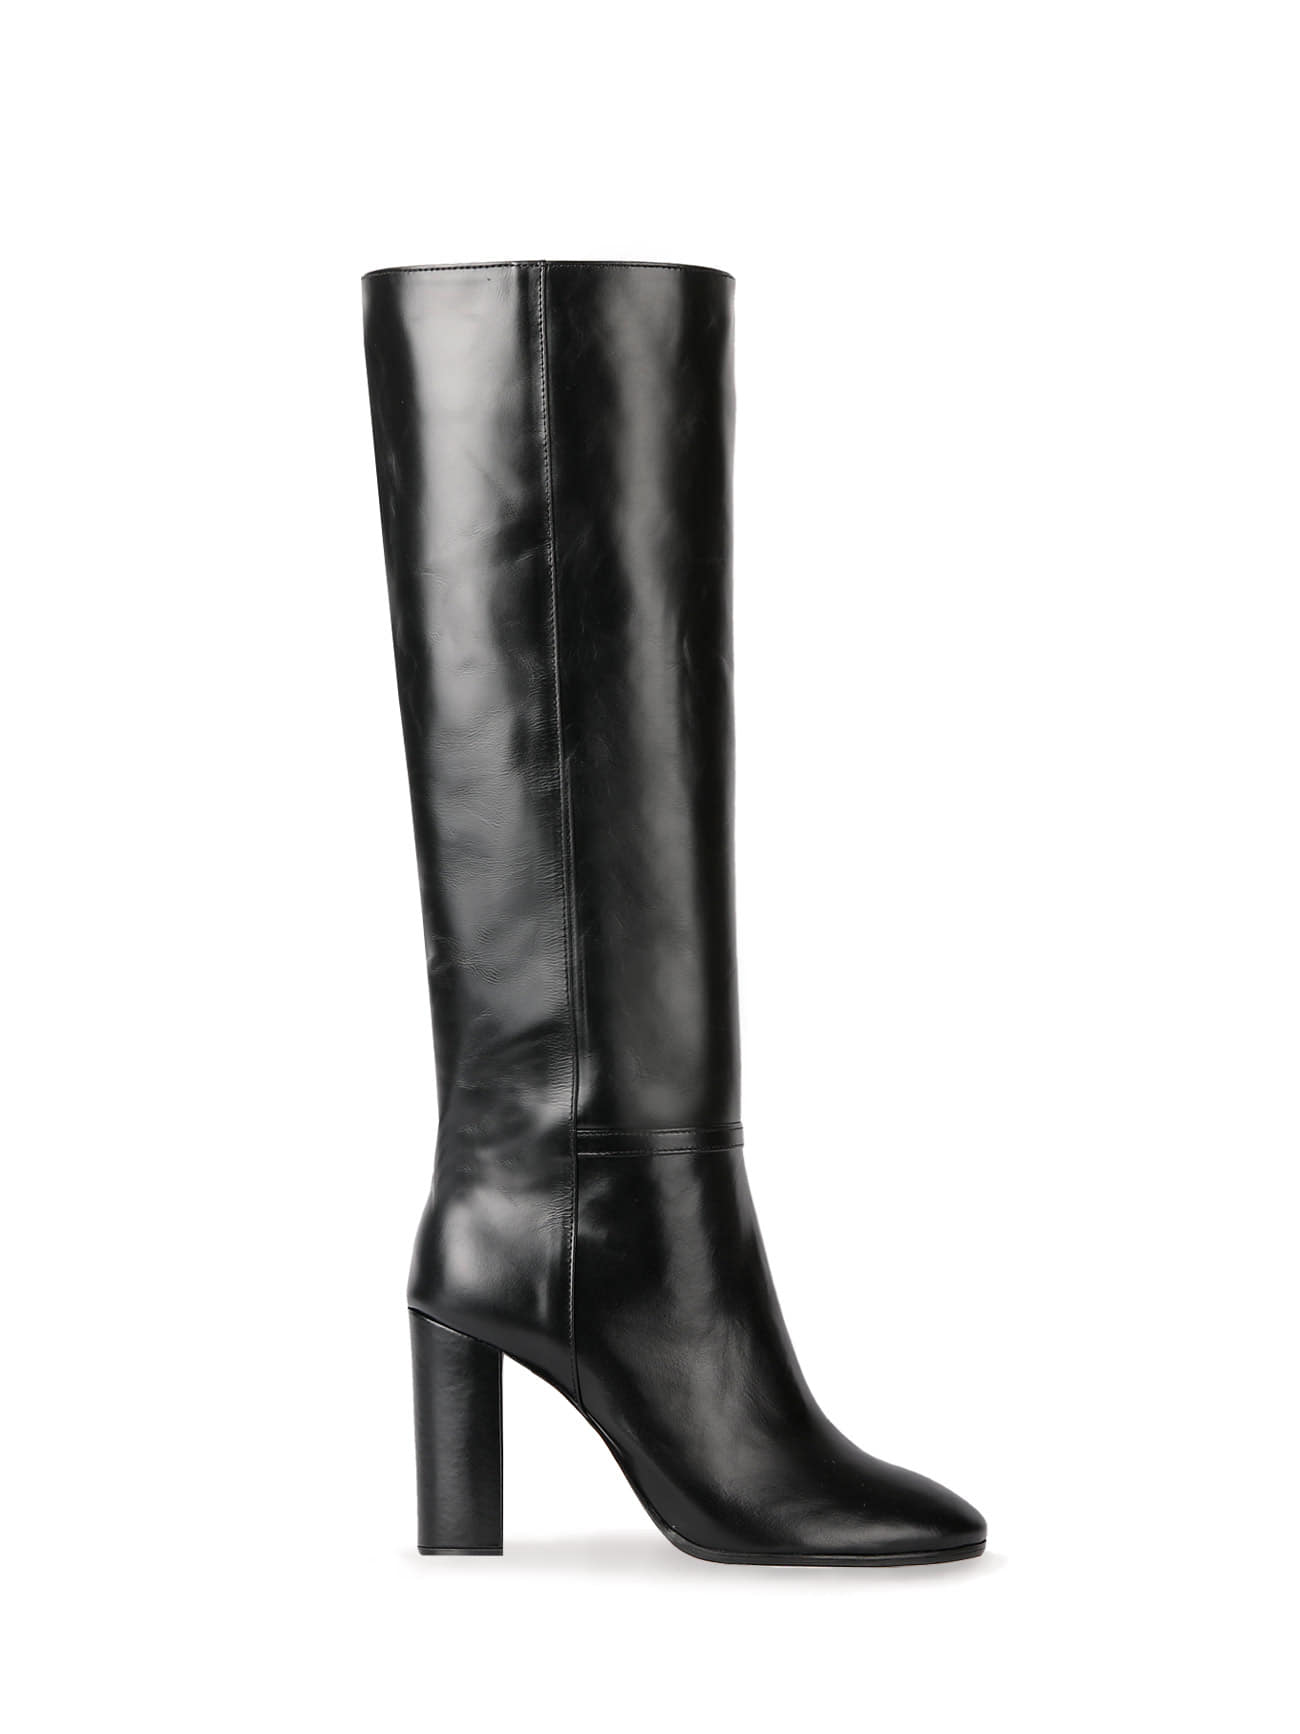 KATE LEATHER KNEE BOOTS (7cm, 9cm) - BLACK